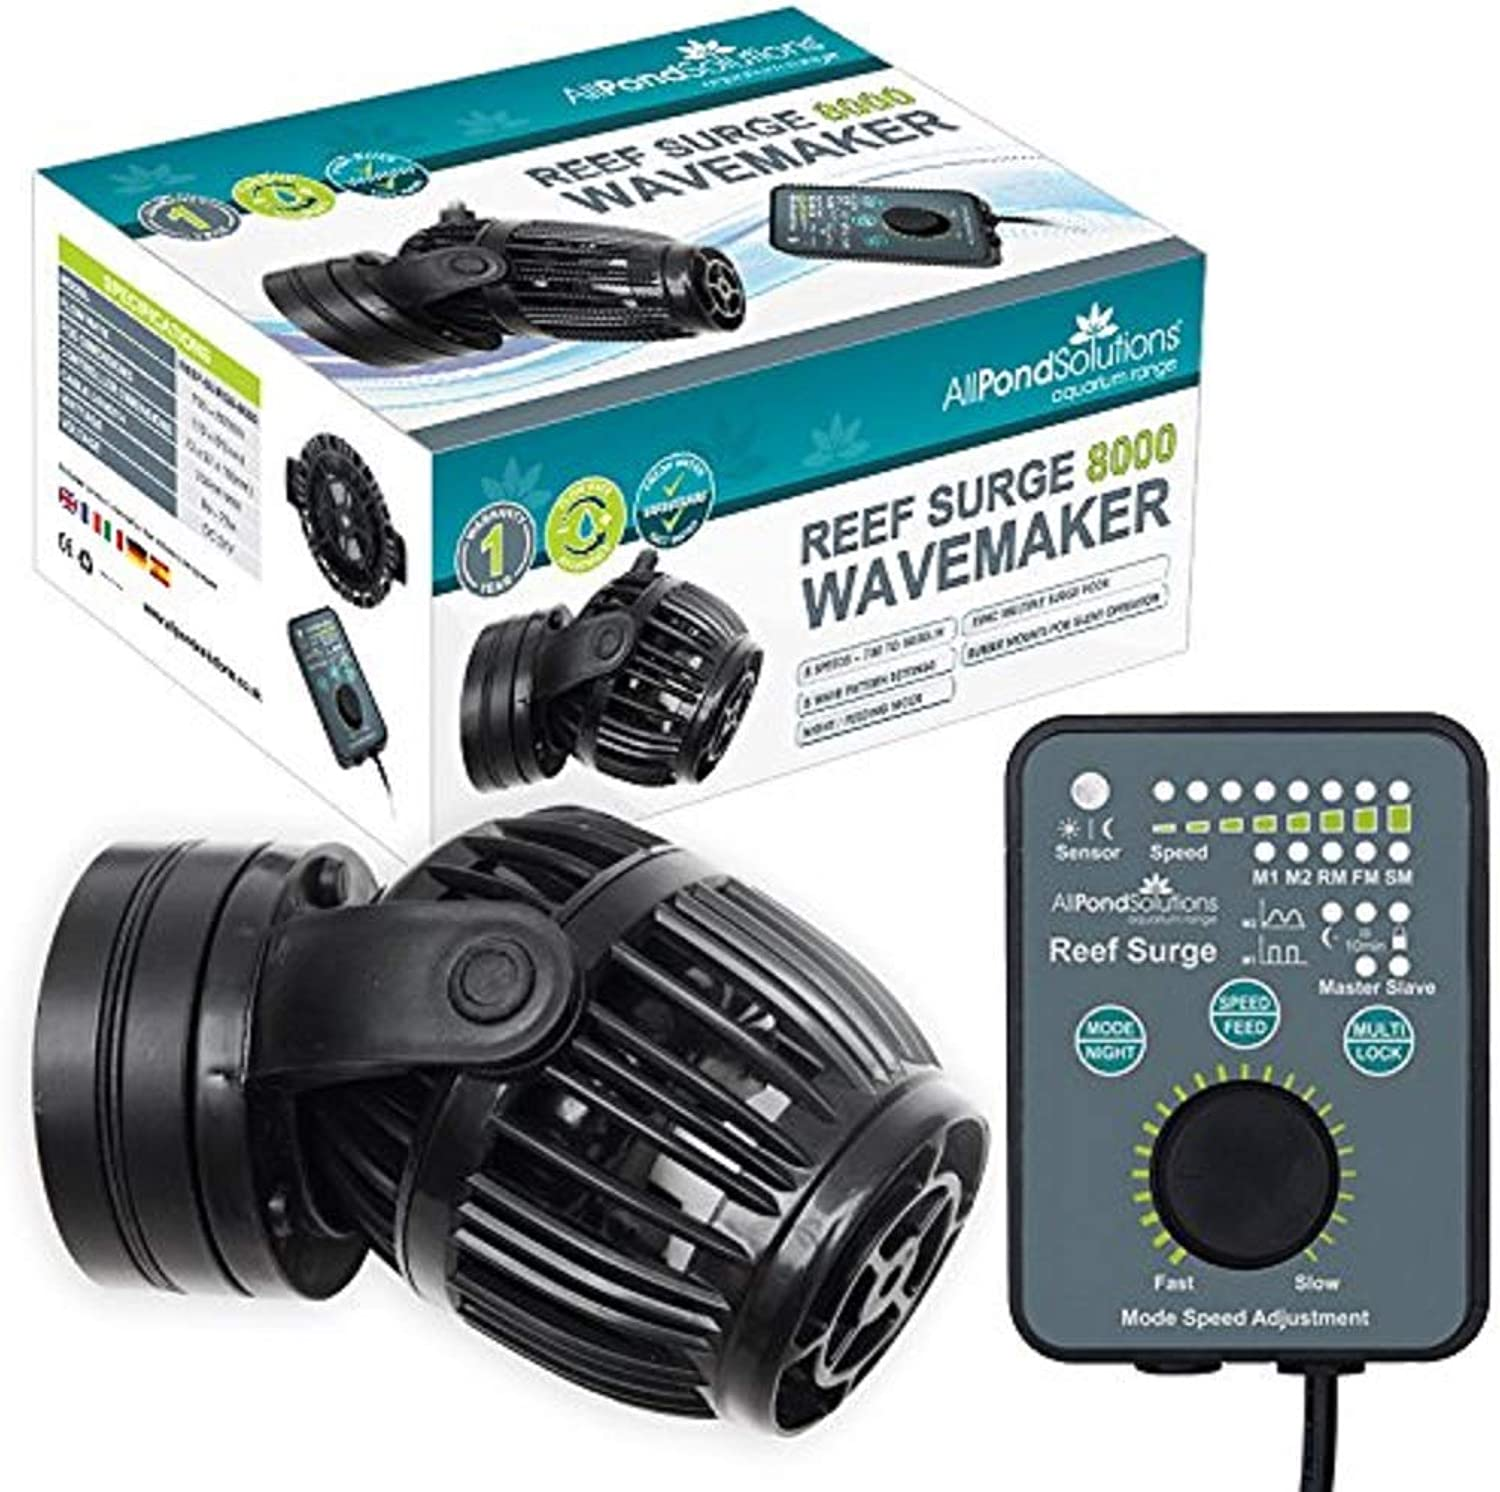 All Pond Solutions Reef Surge Adjustable Programmable Aquarium Wave Maker Powerhead with Remote Control, 5008000 Litre  Hour Flow Rate